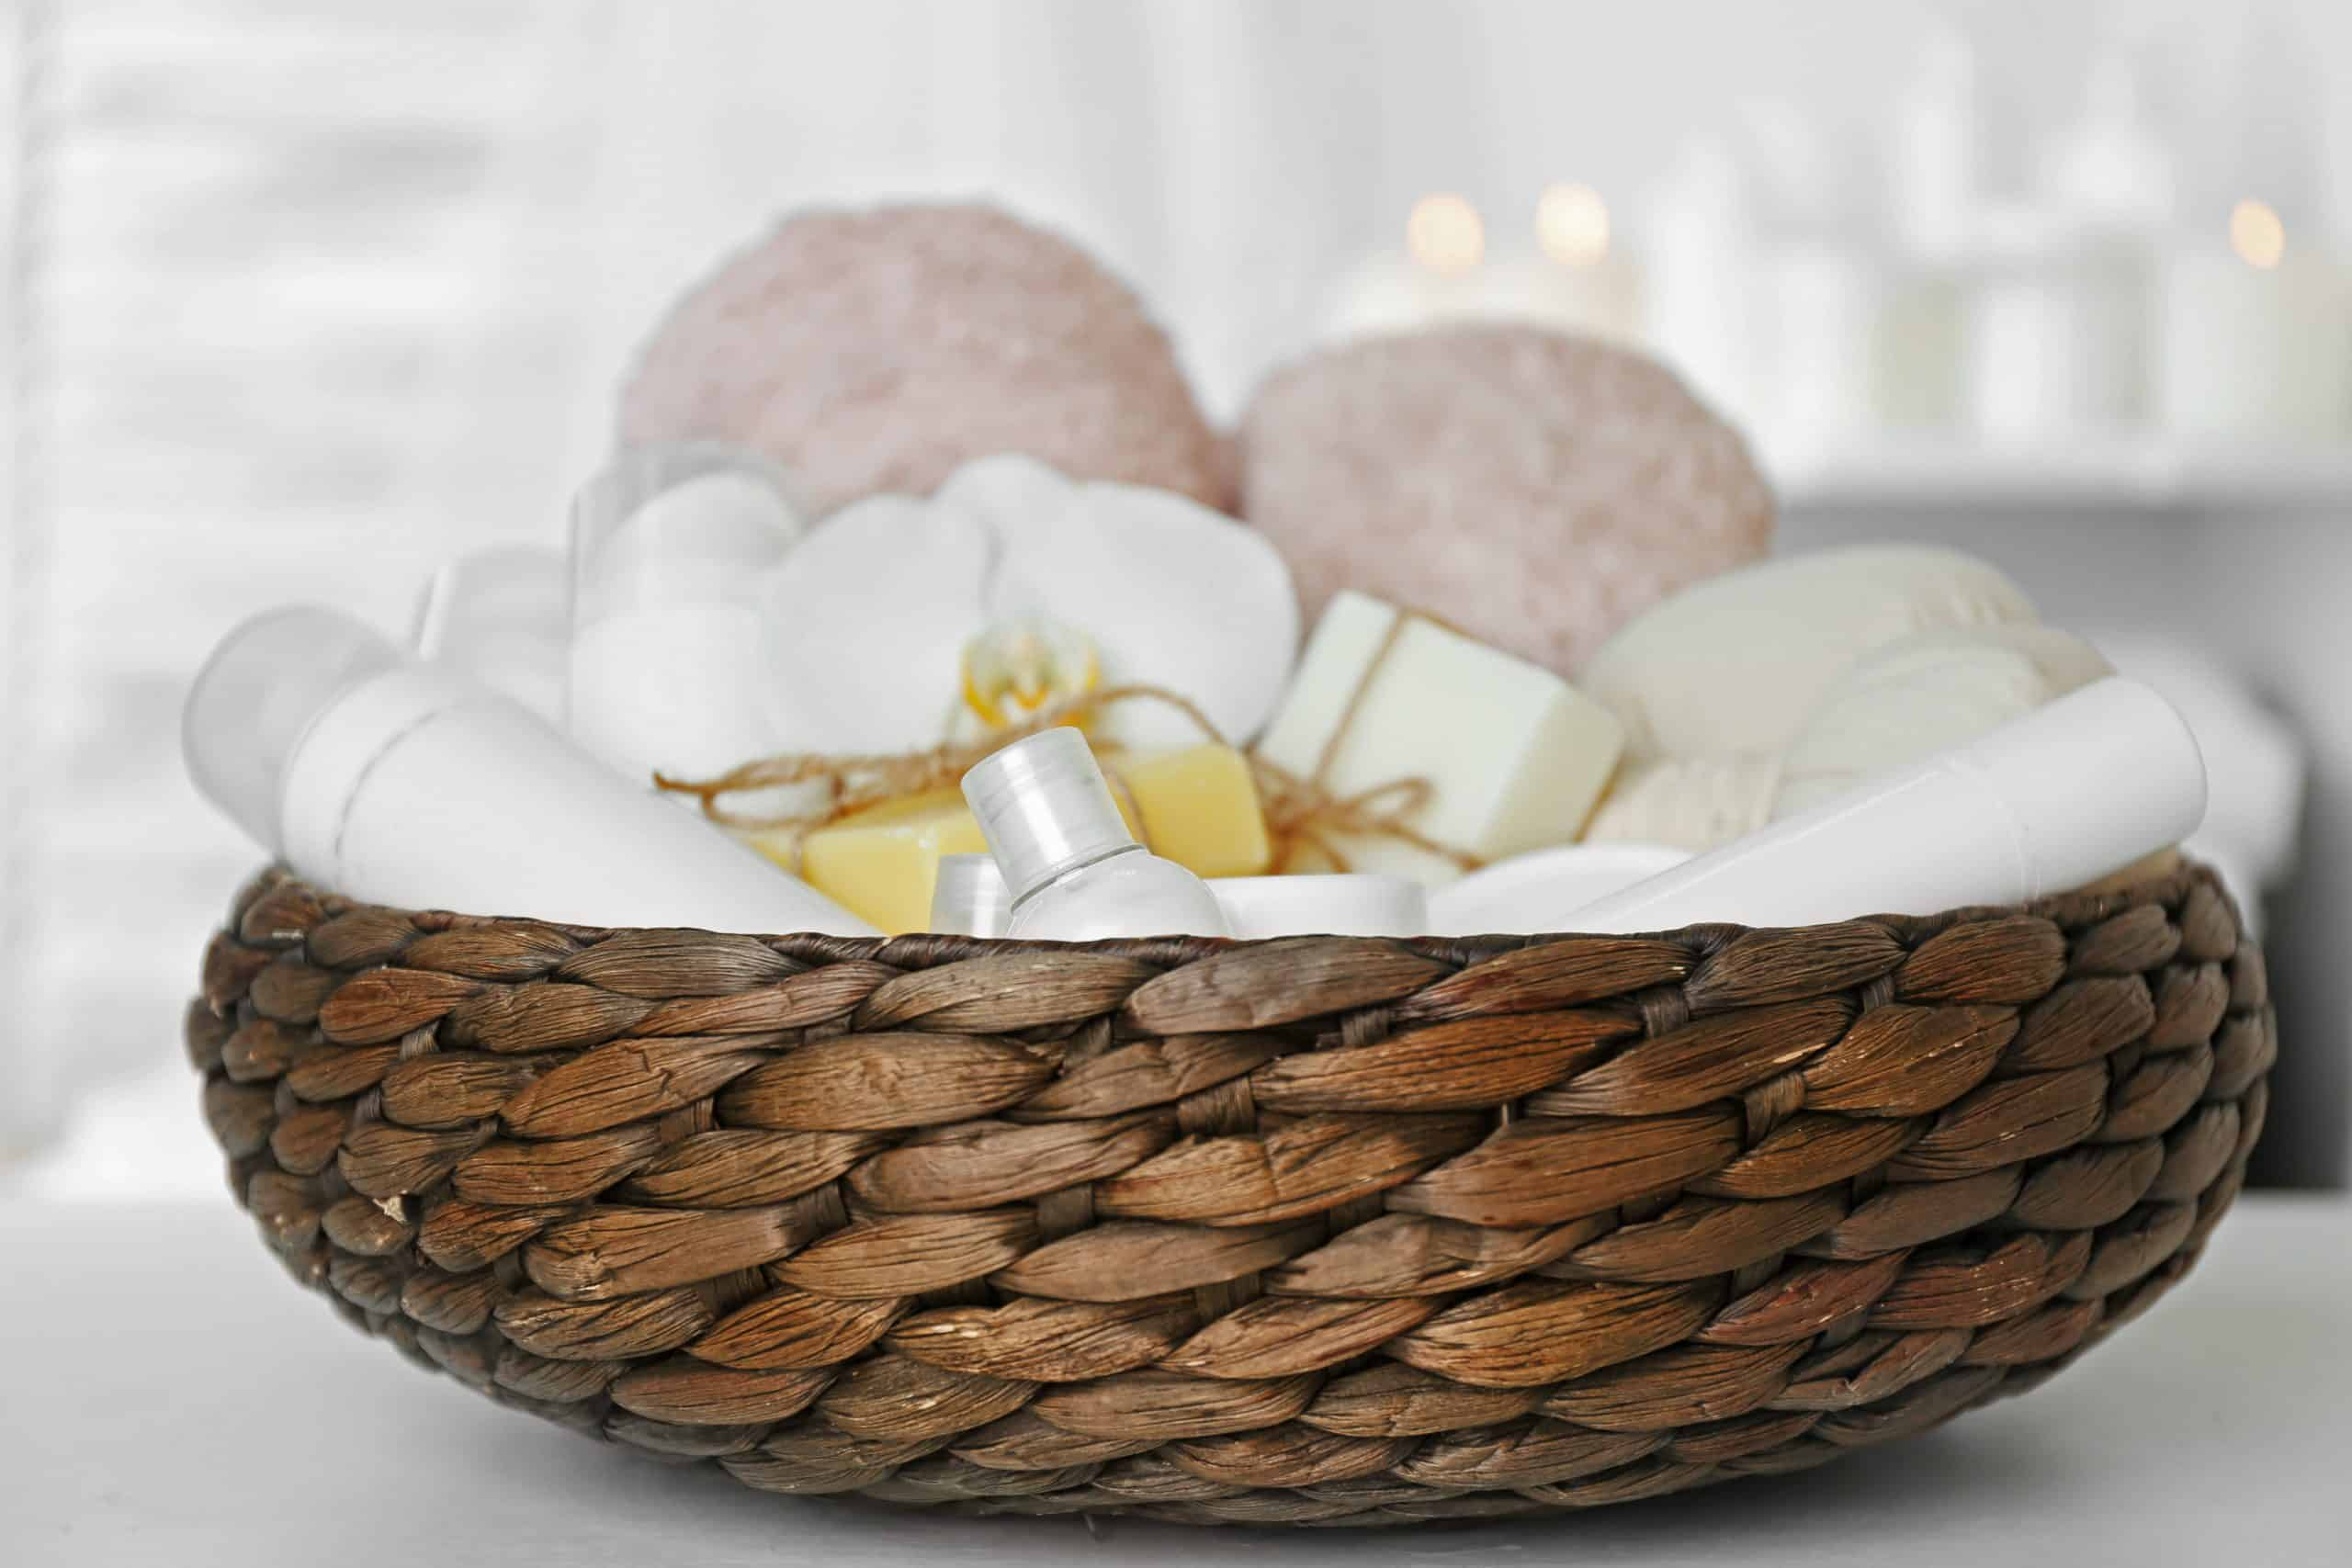 DIY spa day gift basket: Wicker basket with white spa products